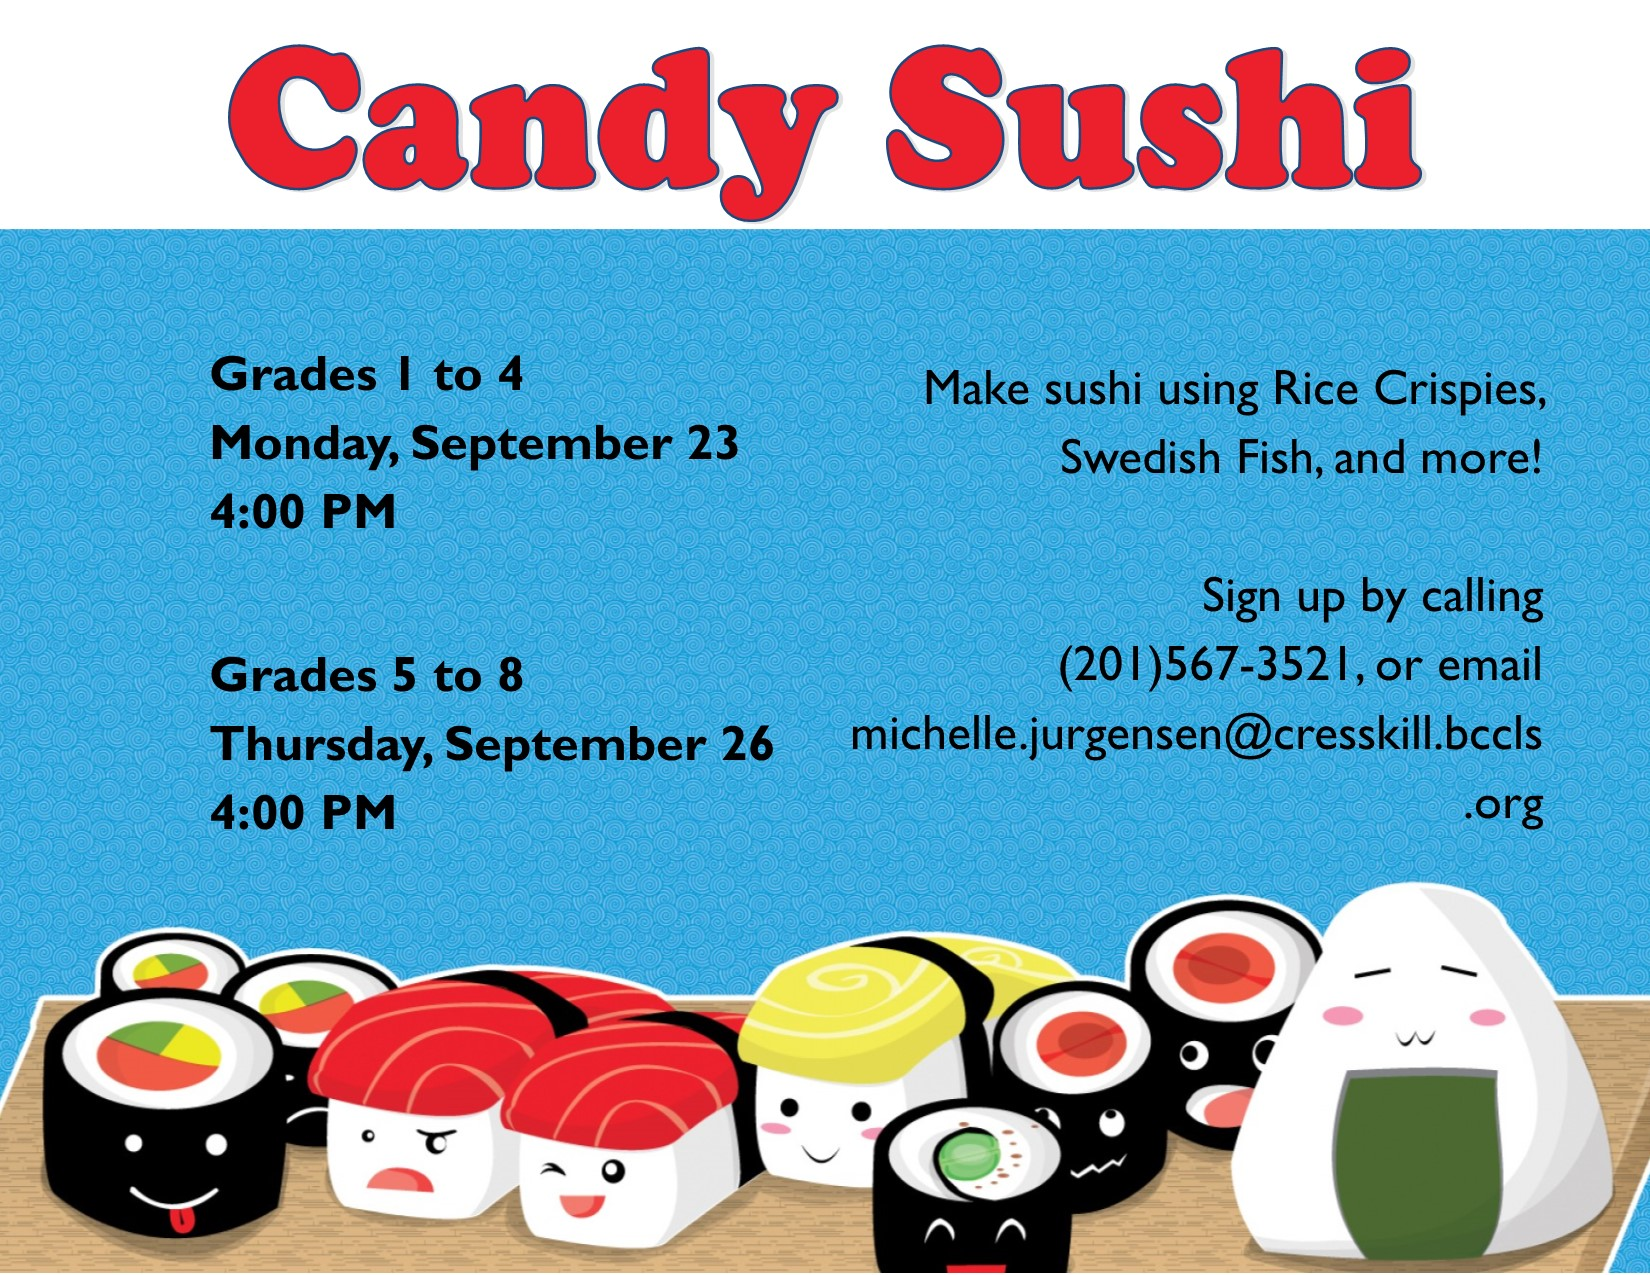 Candy Sushi: Grades 1-4